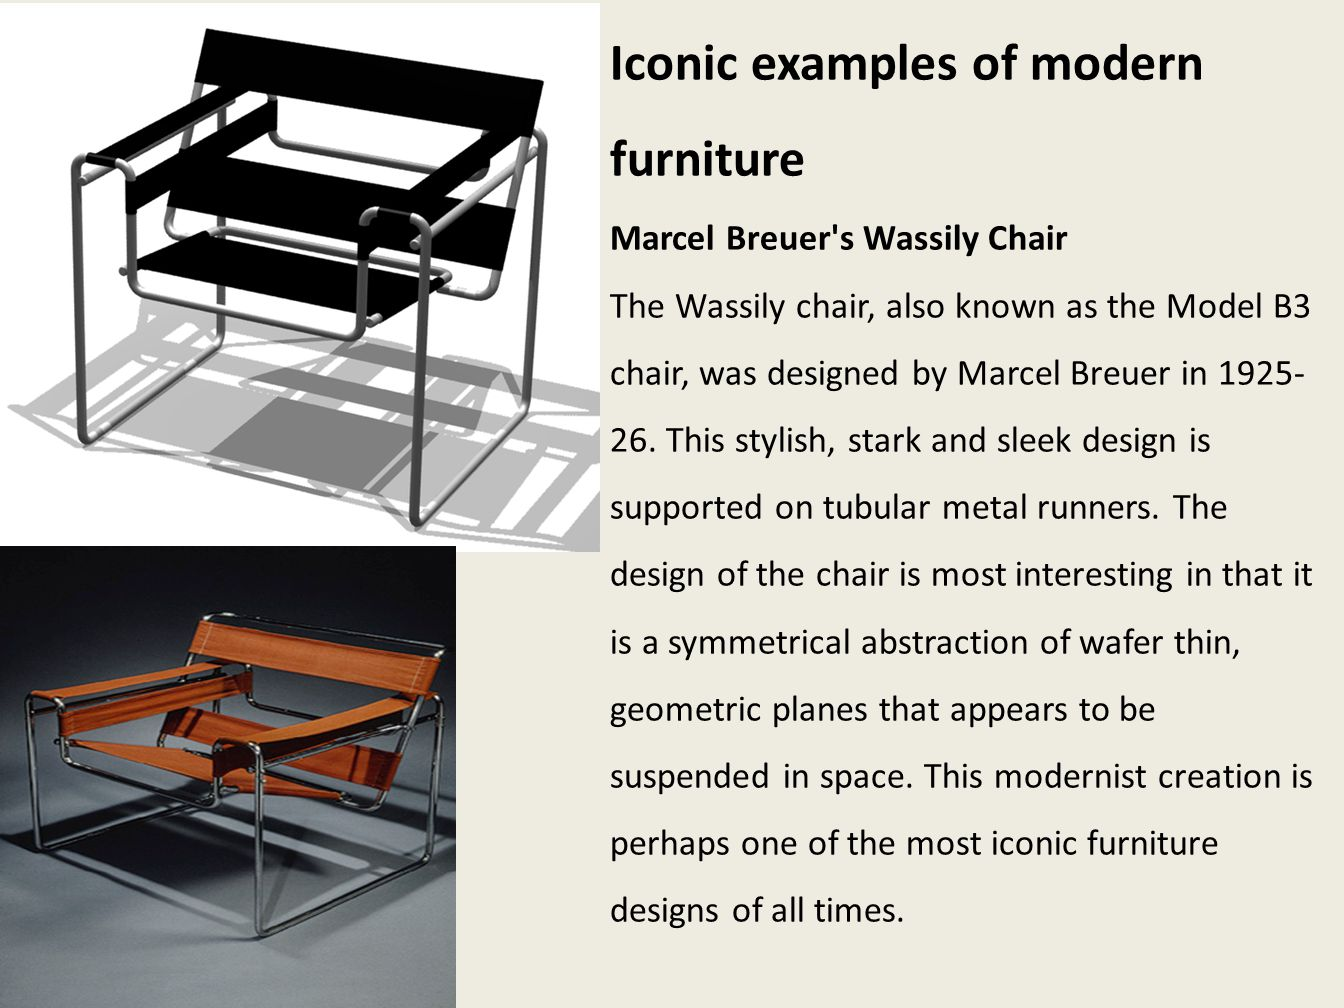 Iconic examples of modern furniture